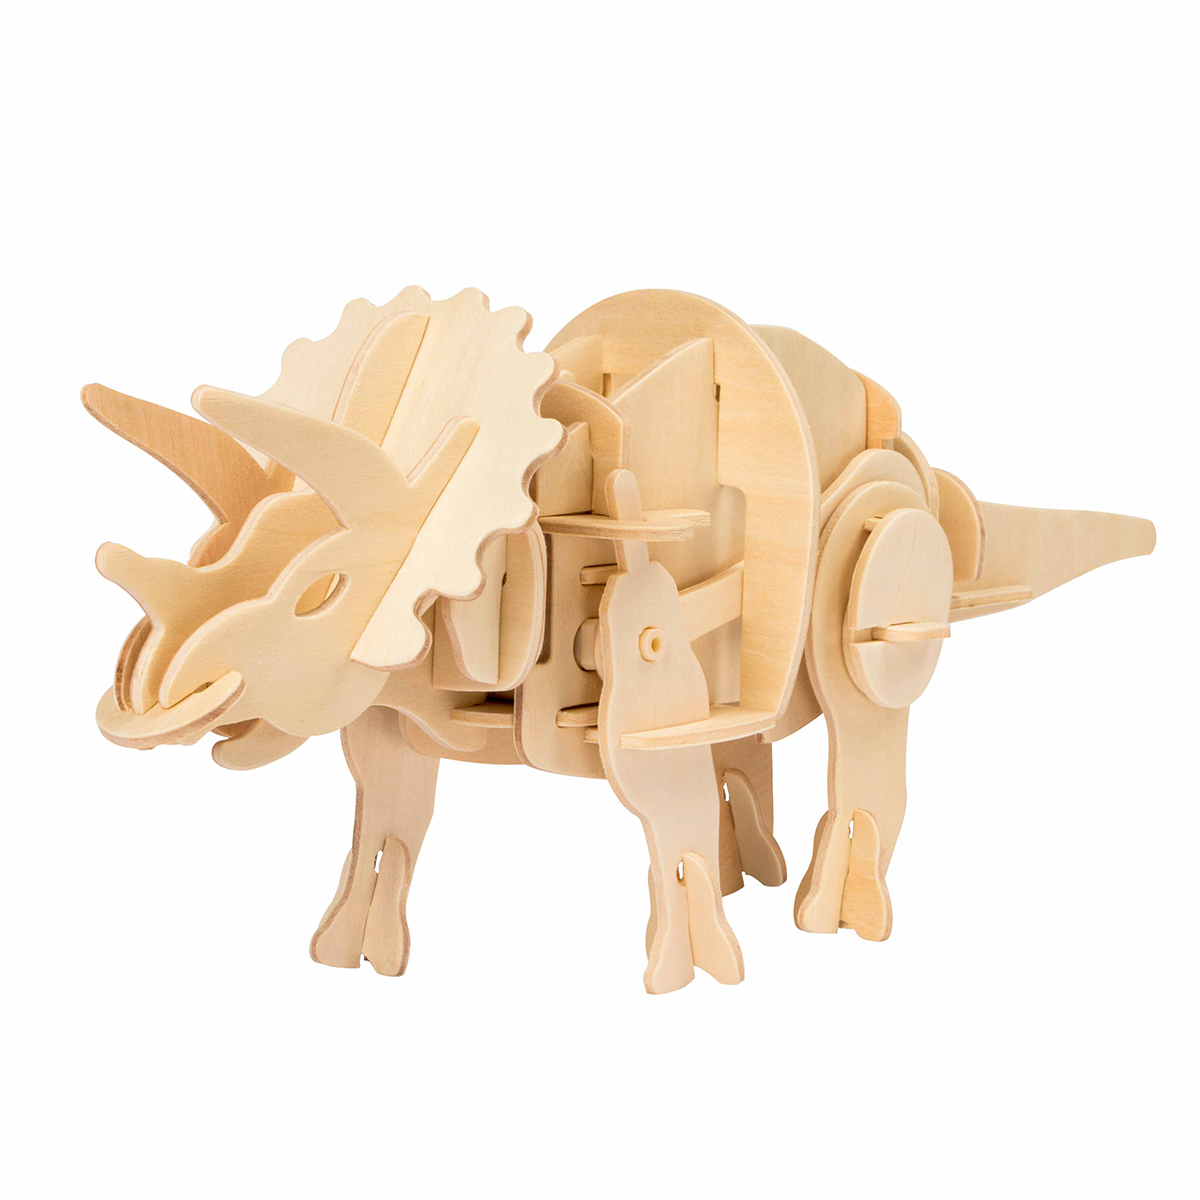 Educational Battery Powered Action Dino-Triceratops-3D Wooden Puzzle